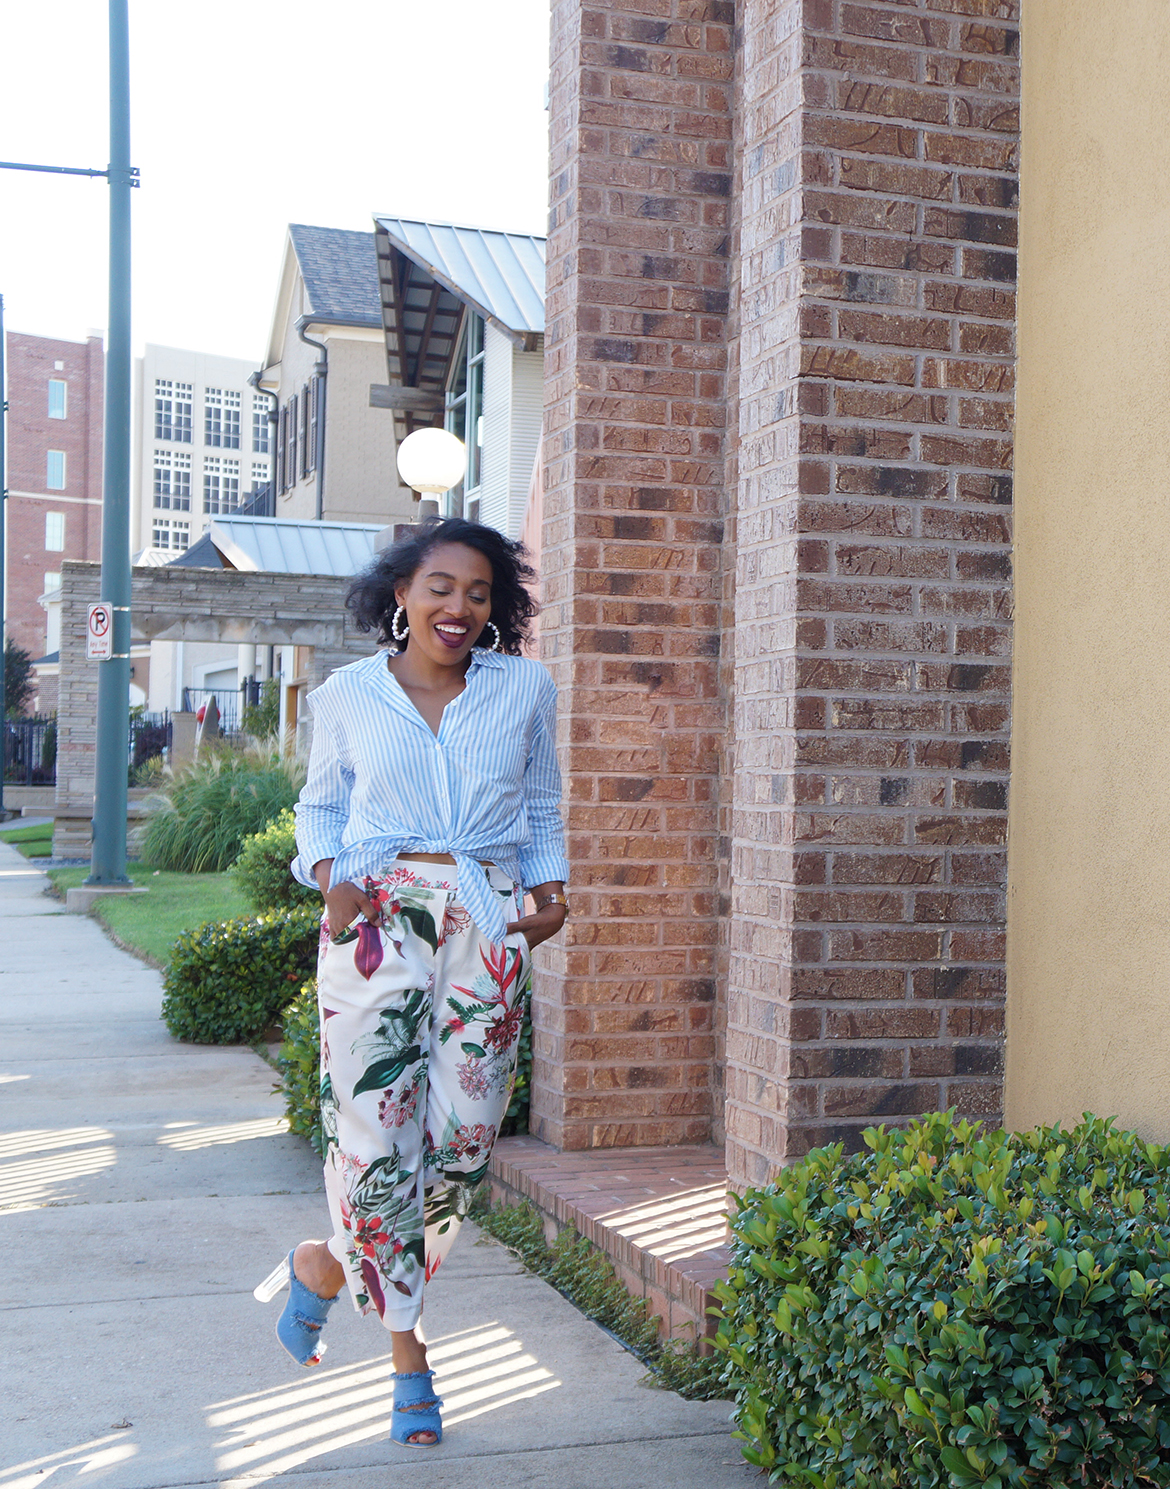 Andrea Fenise Memphis Fashion Blogger shares summers end style story about change